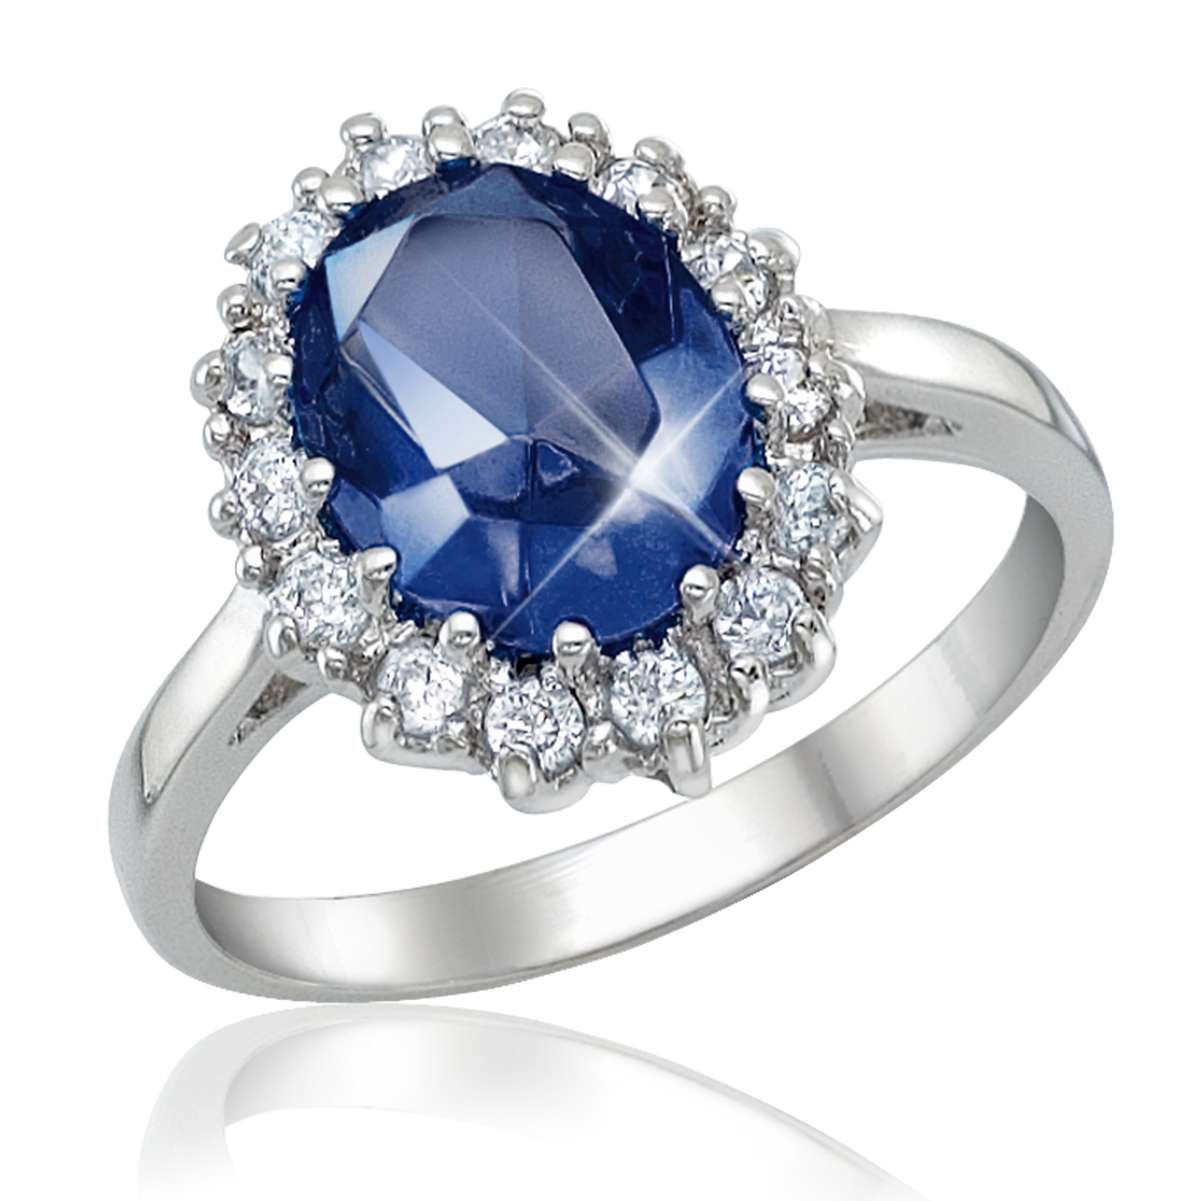 Princess Diana Engagement Ring For Sale